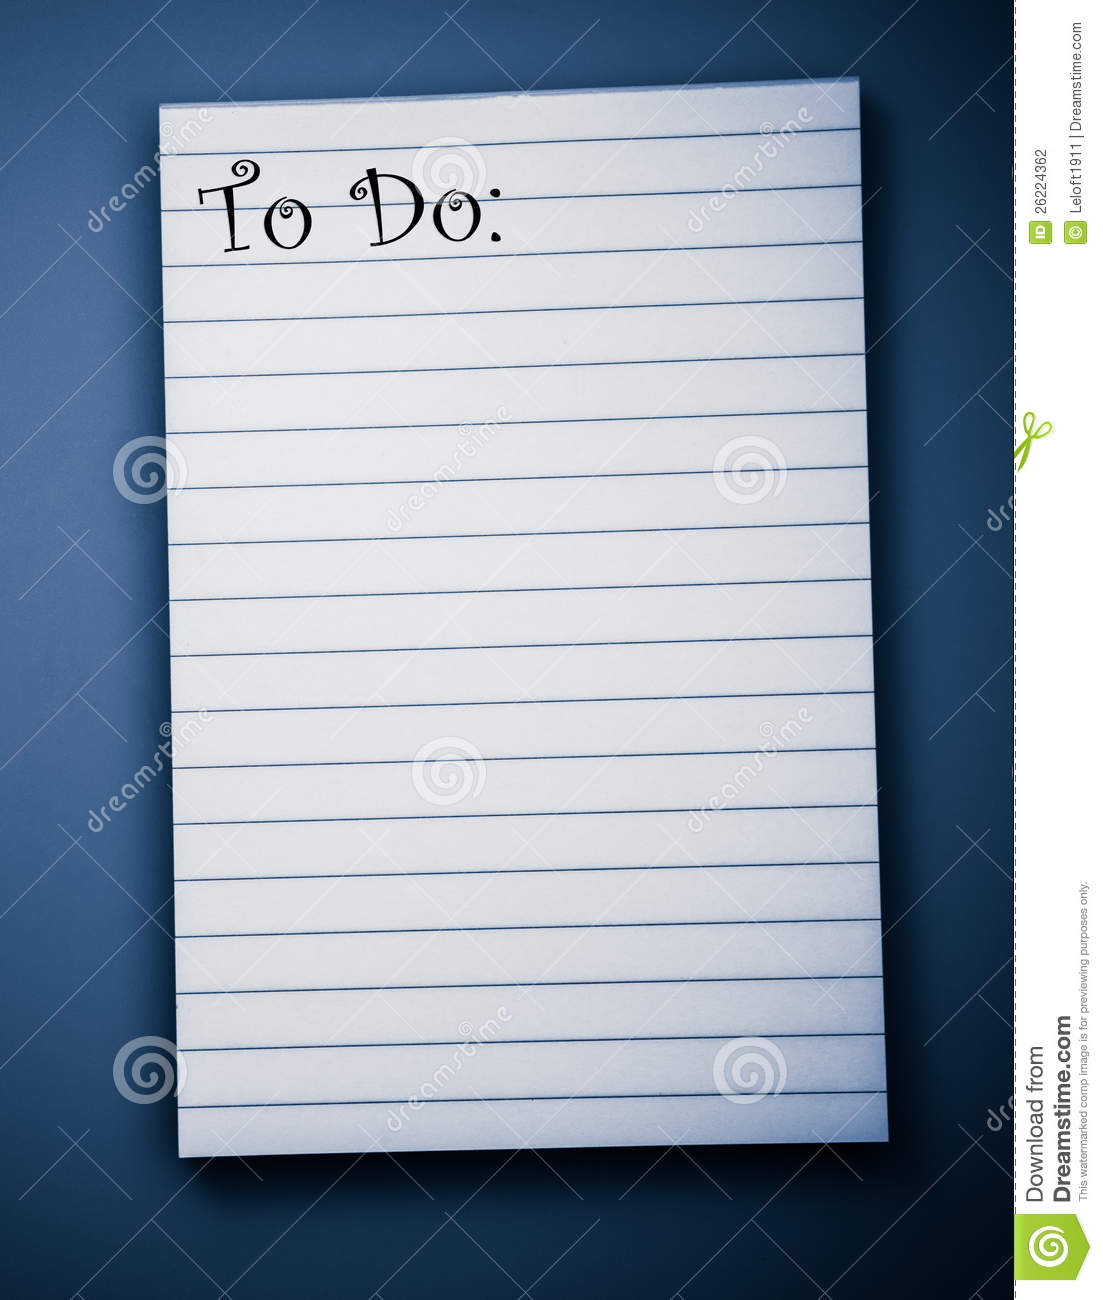 It's just an image of Gutsy To Do List Images